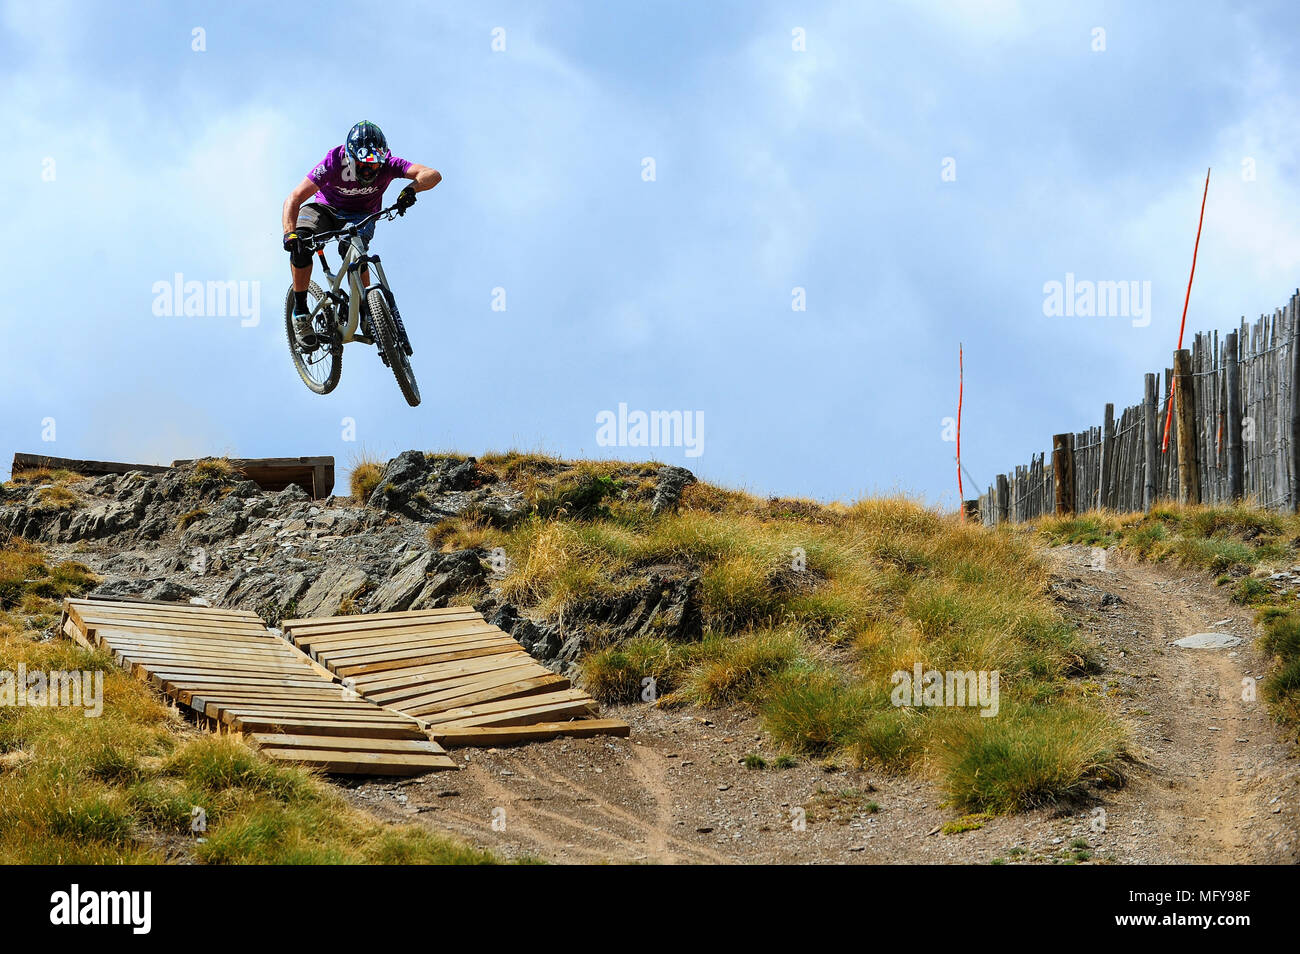 A man rides a mountain bike in the Grandvalira resort in Andorra in the Pyrenees. - Stock Image